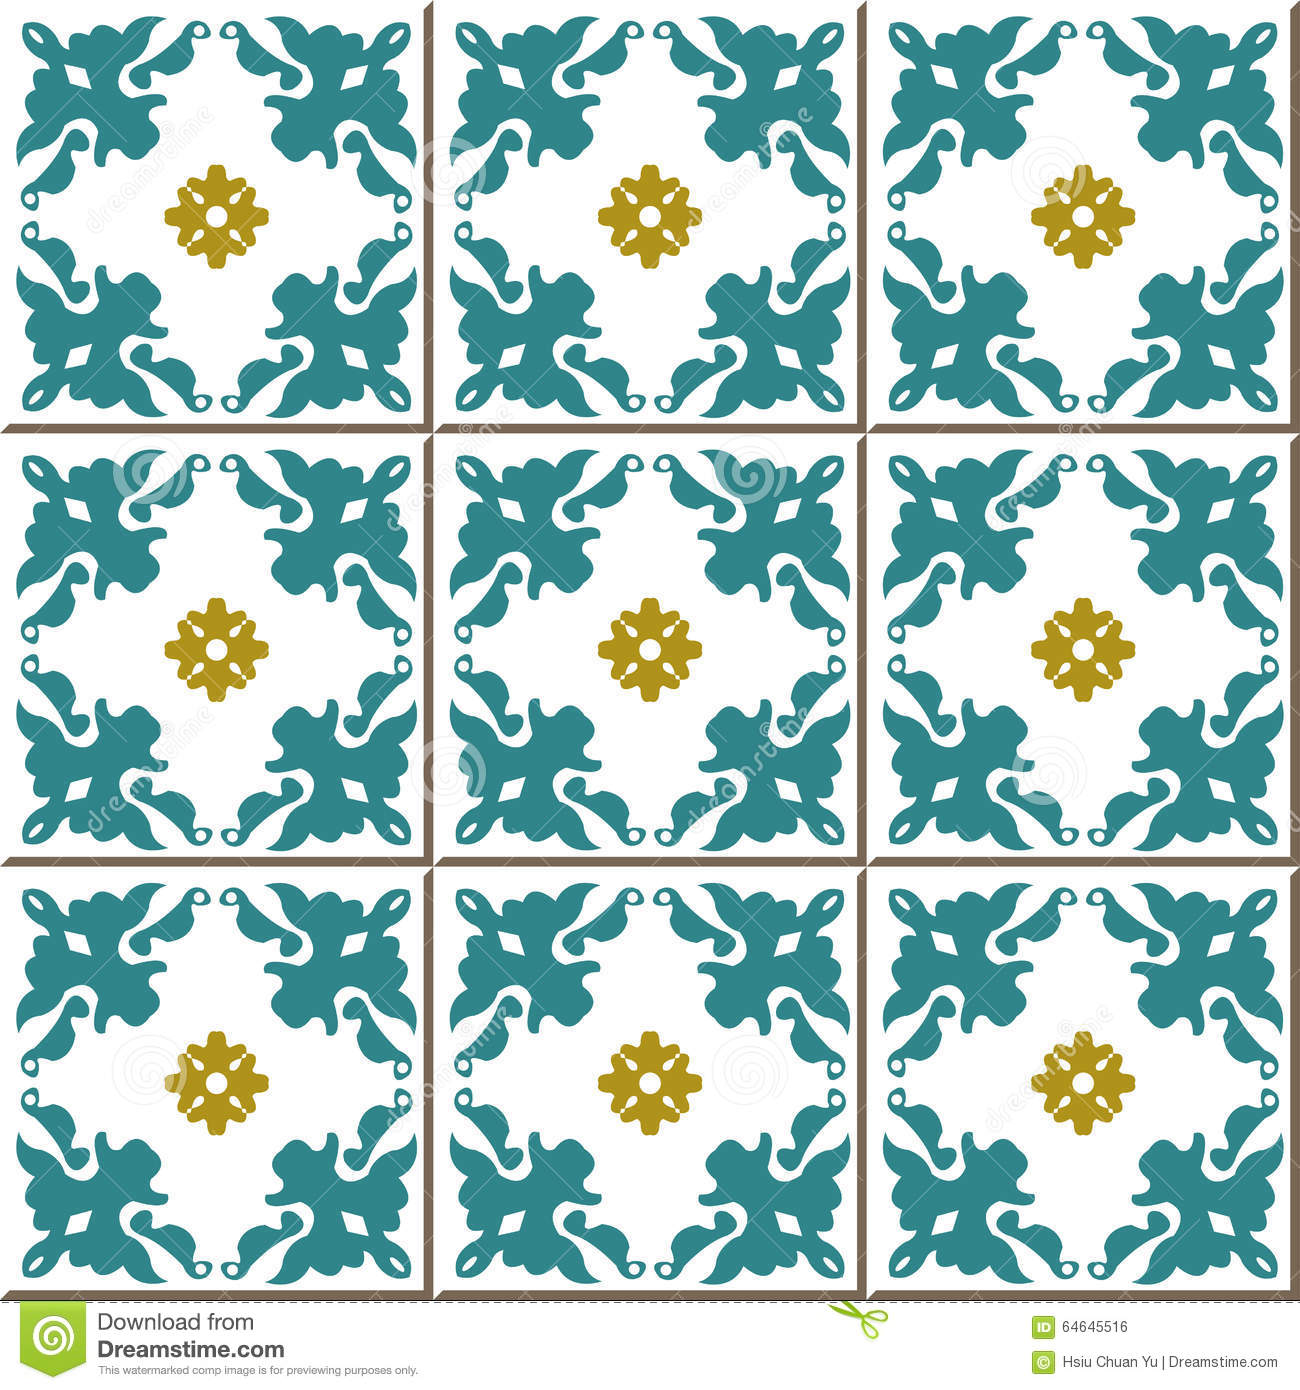 Vintage Seamless Wall Tiles Of Flower Kaleidoscope, Moroccan ...